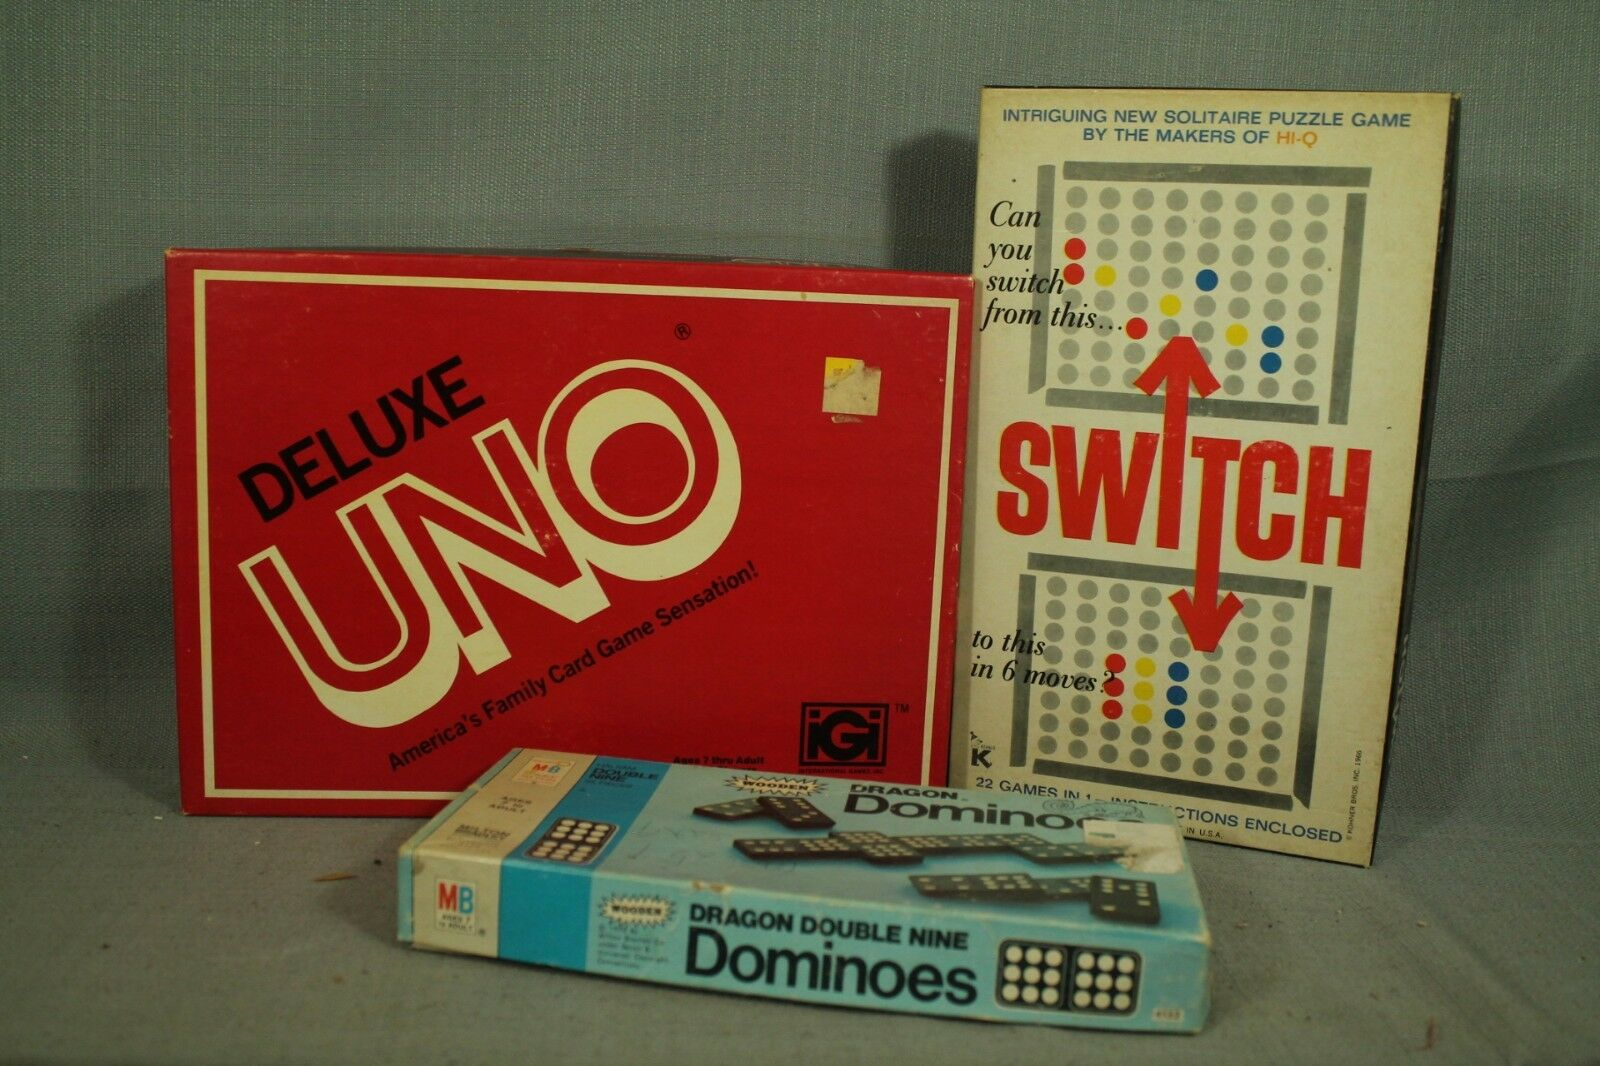 Lot 3 Jeux Vintage Dragon Bois Dominos Switch Kohner Bros Uno Deluxe Edition